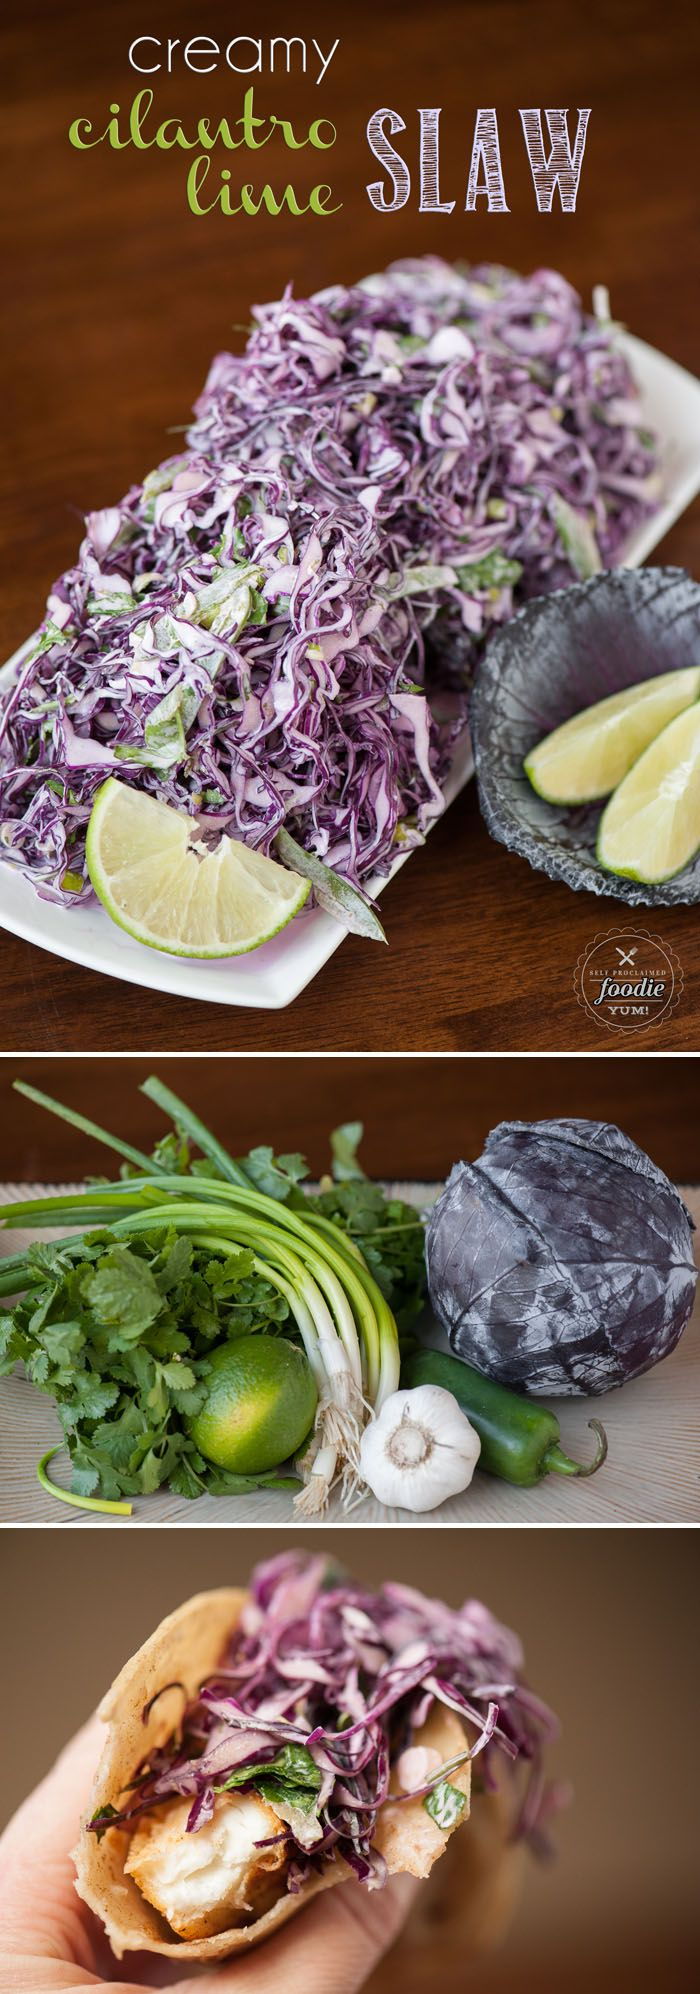 Best 25 tacos ideas on pinterest healthy chicken tacos for Suggestions for sides for fish tacos